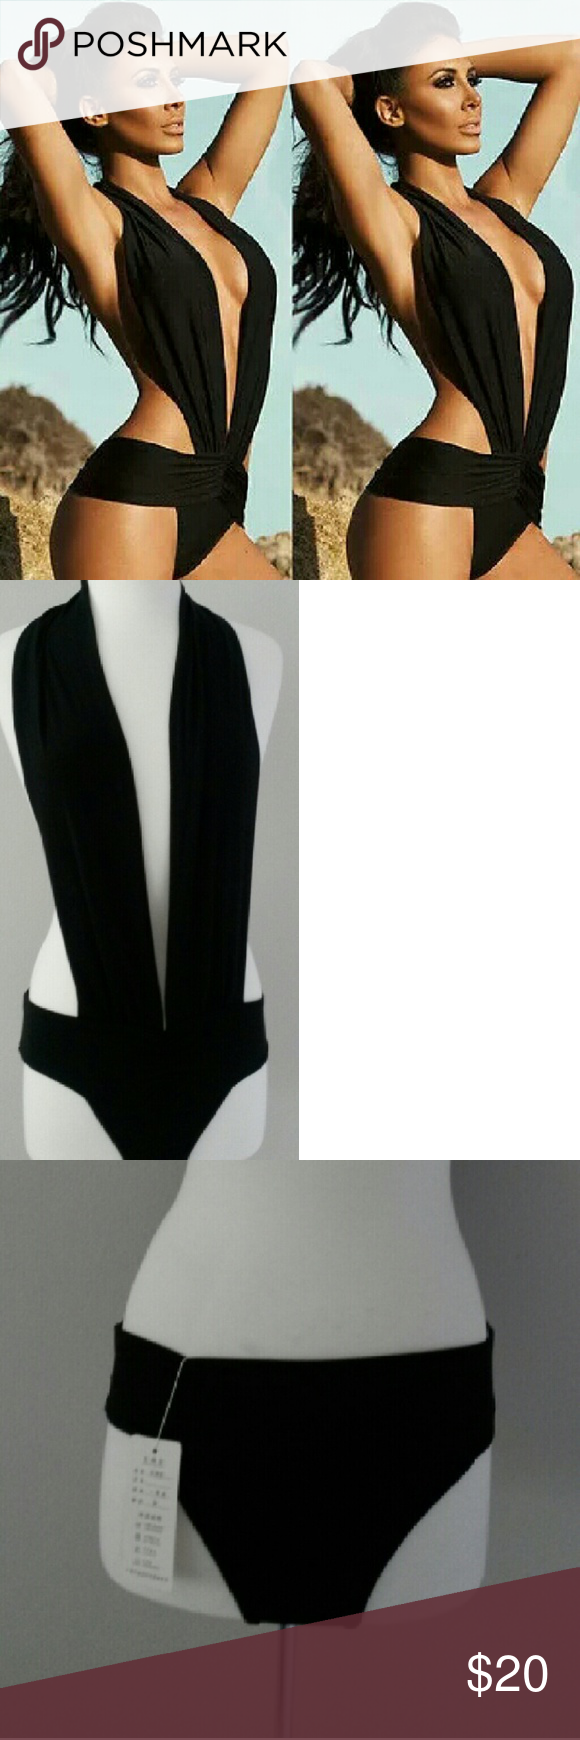 Halter Deep V Monokini New with tags  Material: Polyester LuxuryFAB Swim One Pieces